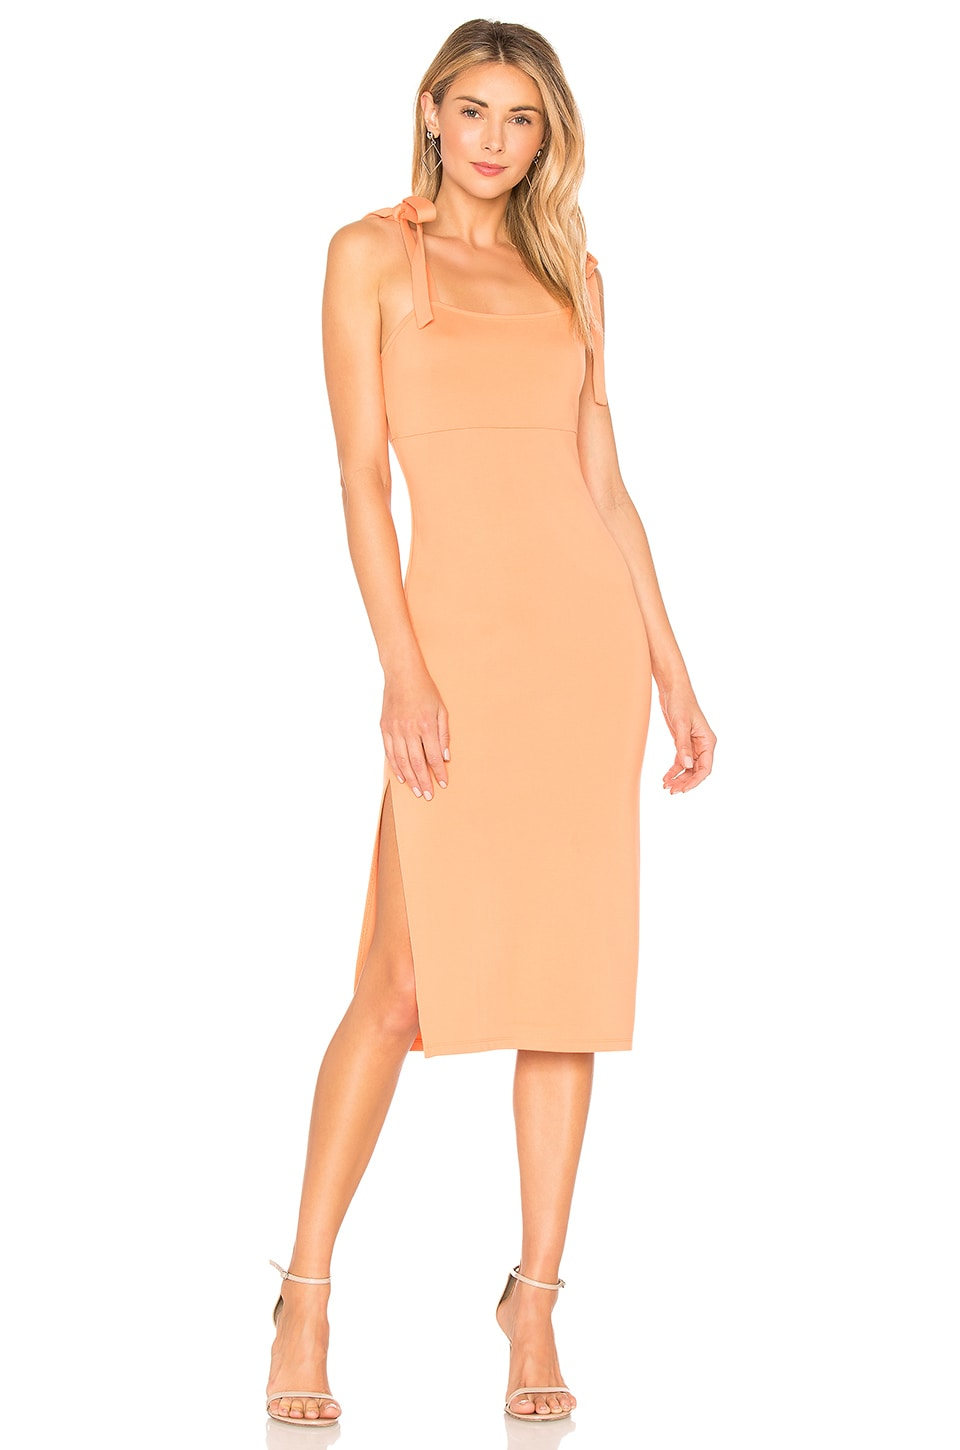 Privacy Please Athens Midi in Apricot